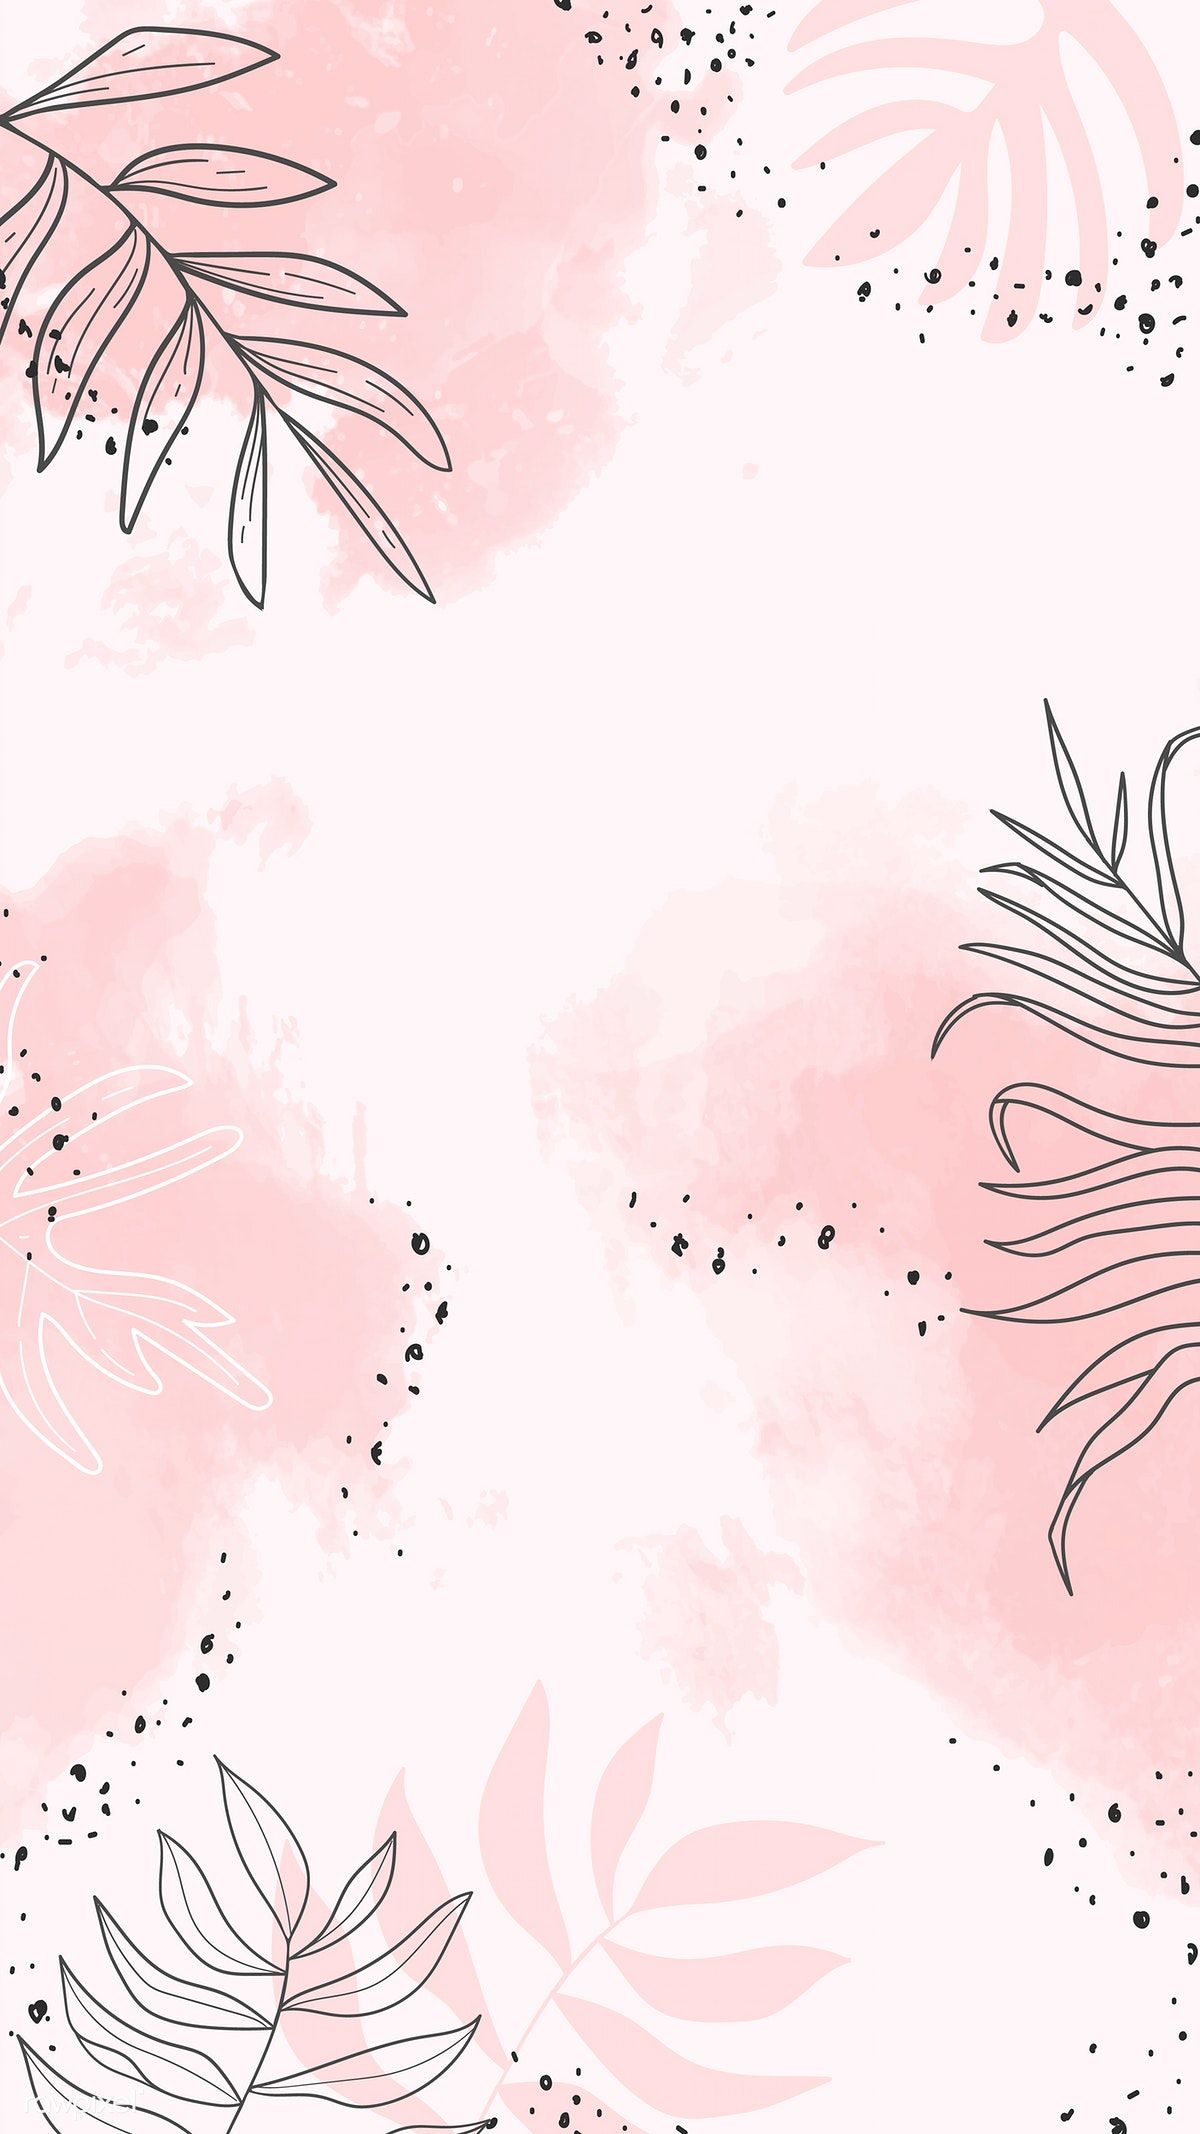 Download premium vector of Pink leafy watercolor mobile phone wallpaper vector by Aum about pink leafy watercolor mobile phone, watercolor leafy mobile phone wallpaper, flower pastel watercolor mobile wallpaper, floral phone background, and watercolor mobile phone wallpaper 1222759